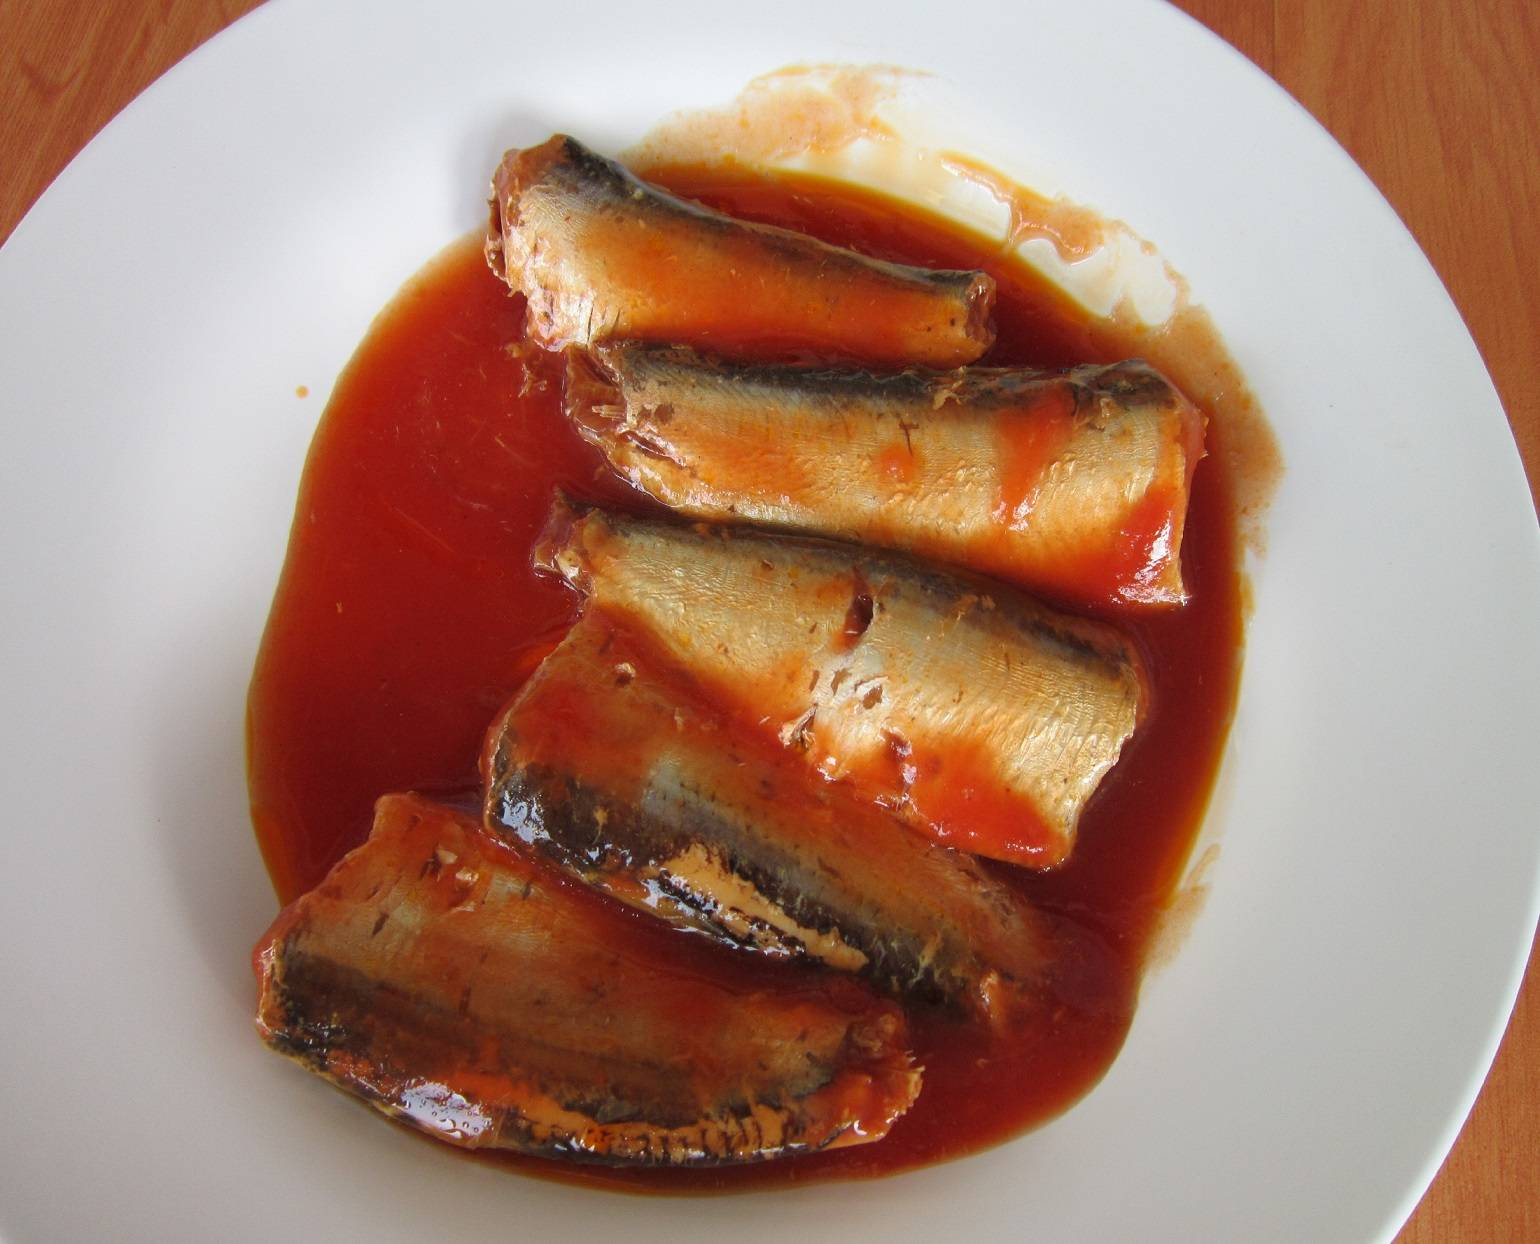 Canned sardines in tomato sause